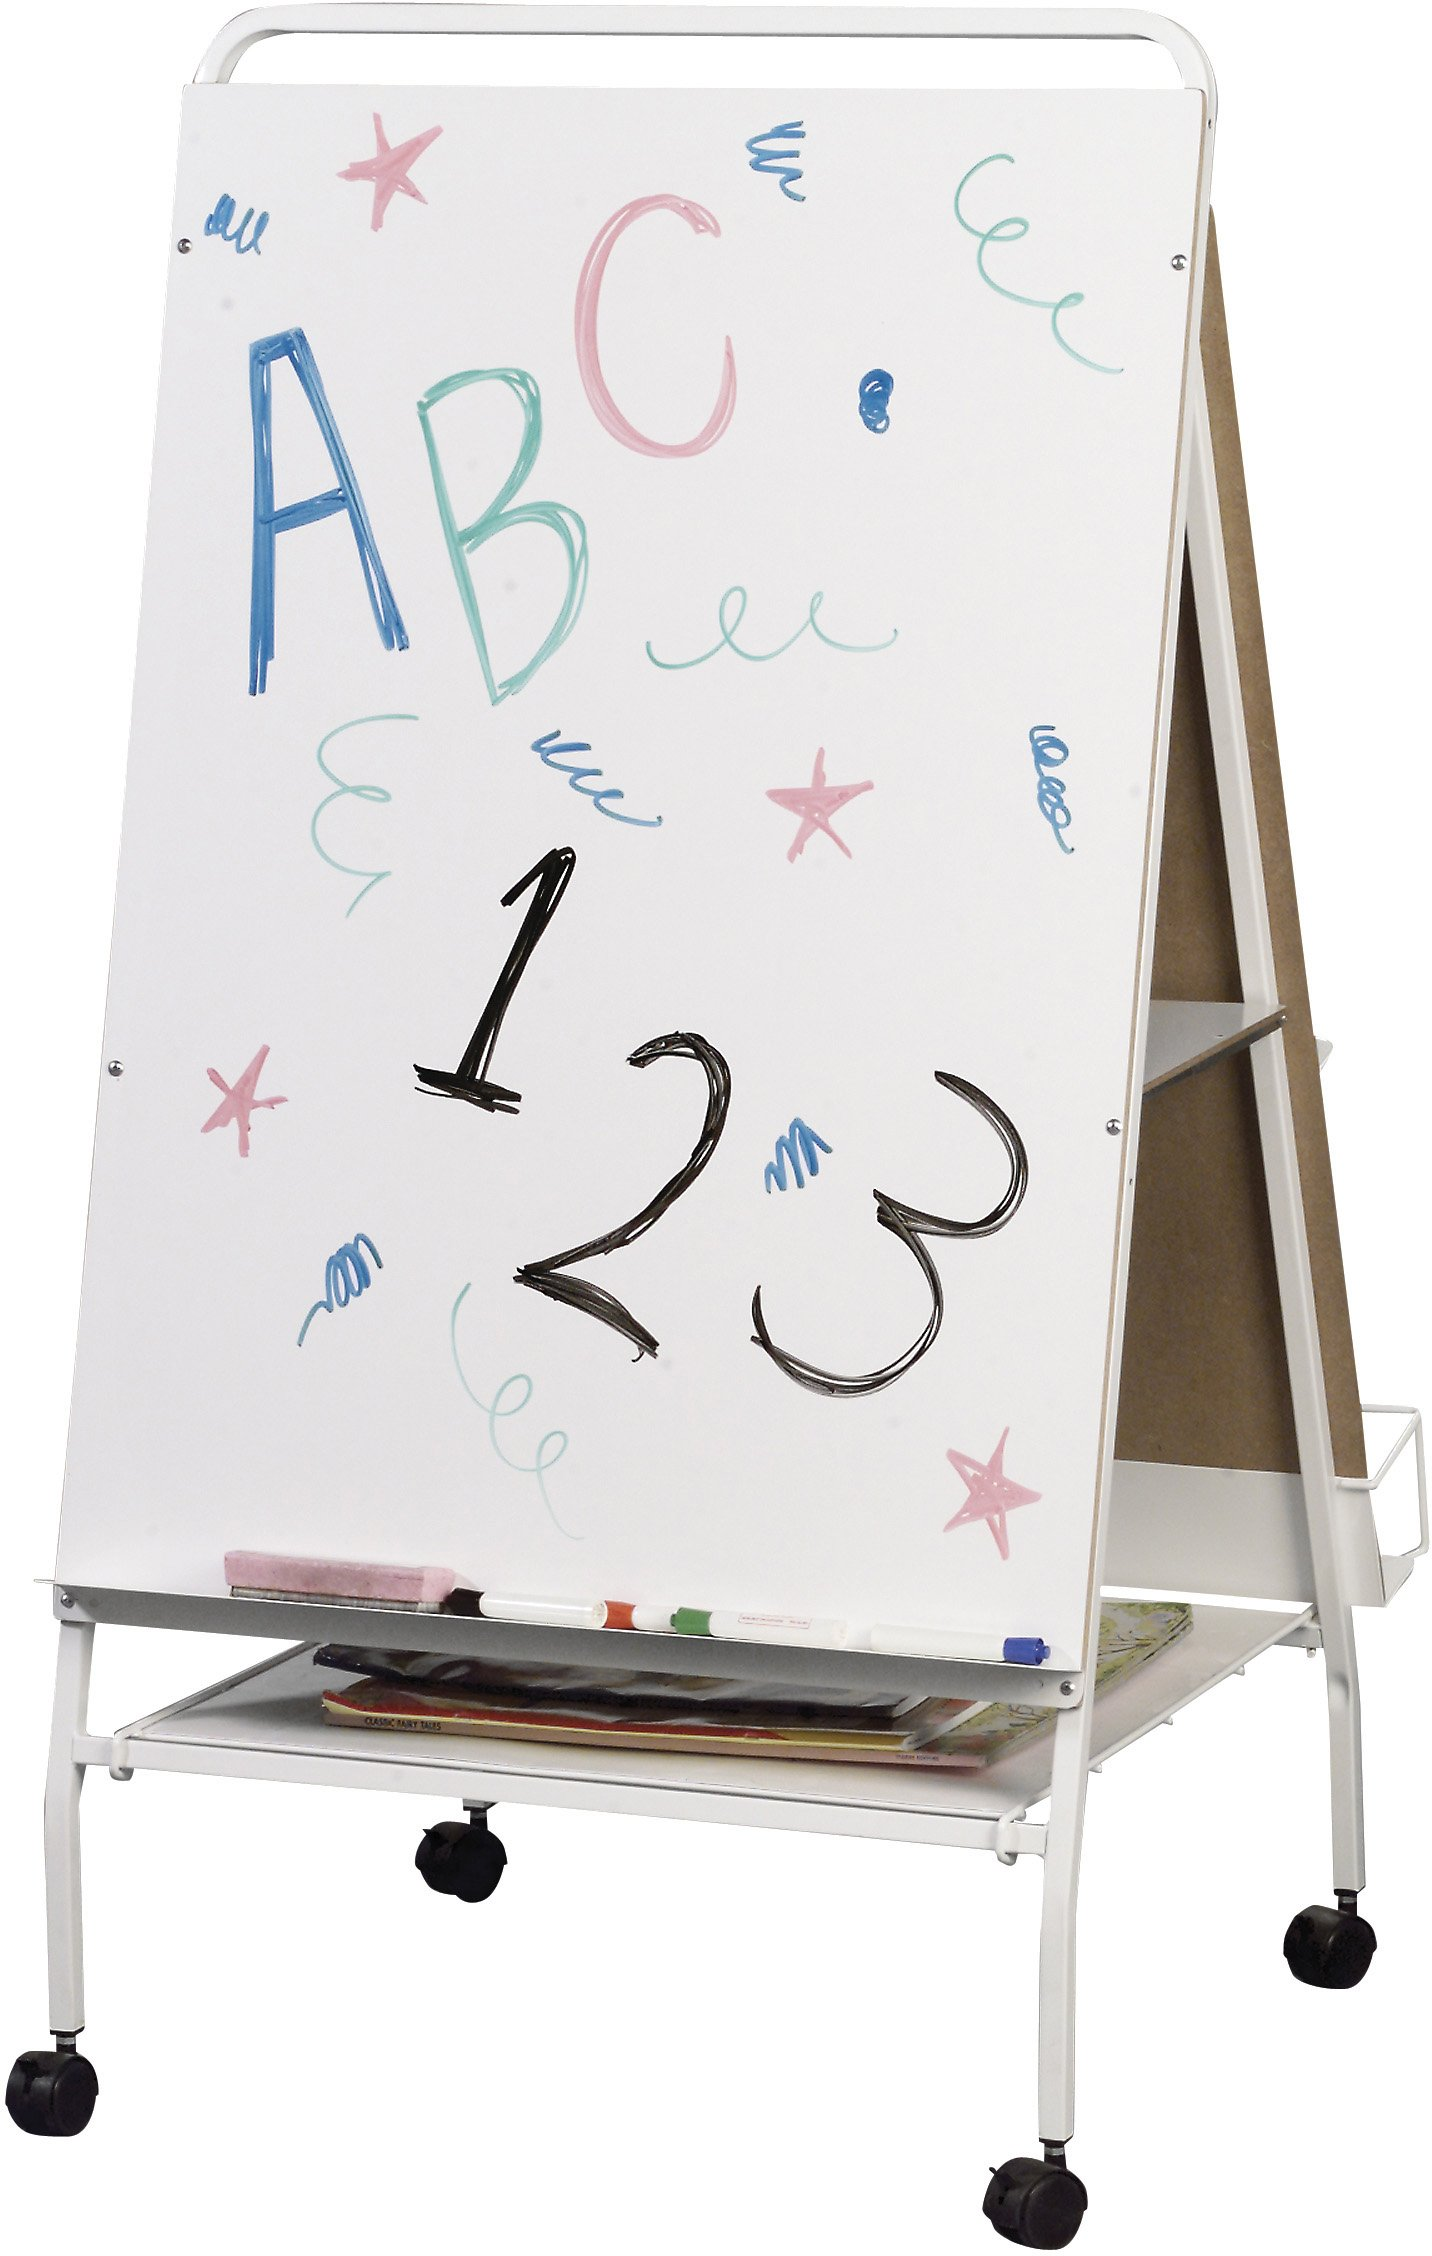 Best-Rite Baby Folding Easel with Middle Storage Tray, Teacher Easel Station (784) by Best-Rite